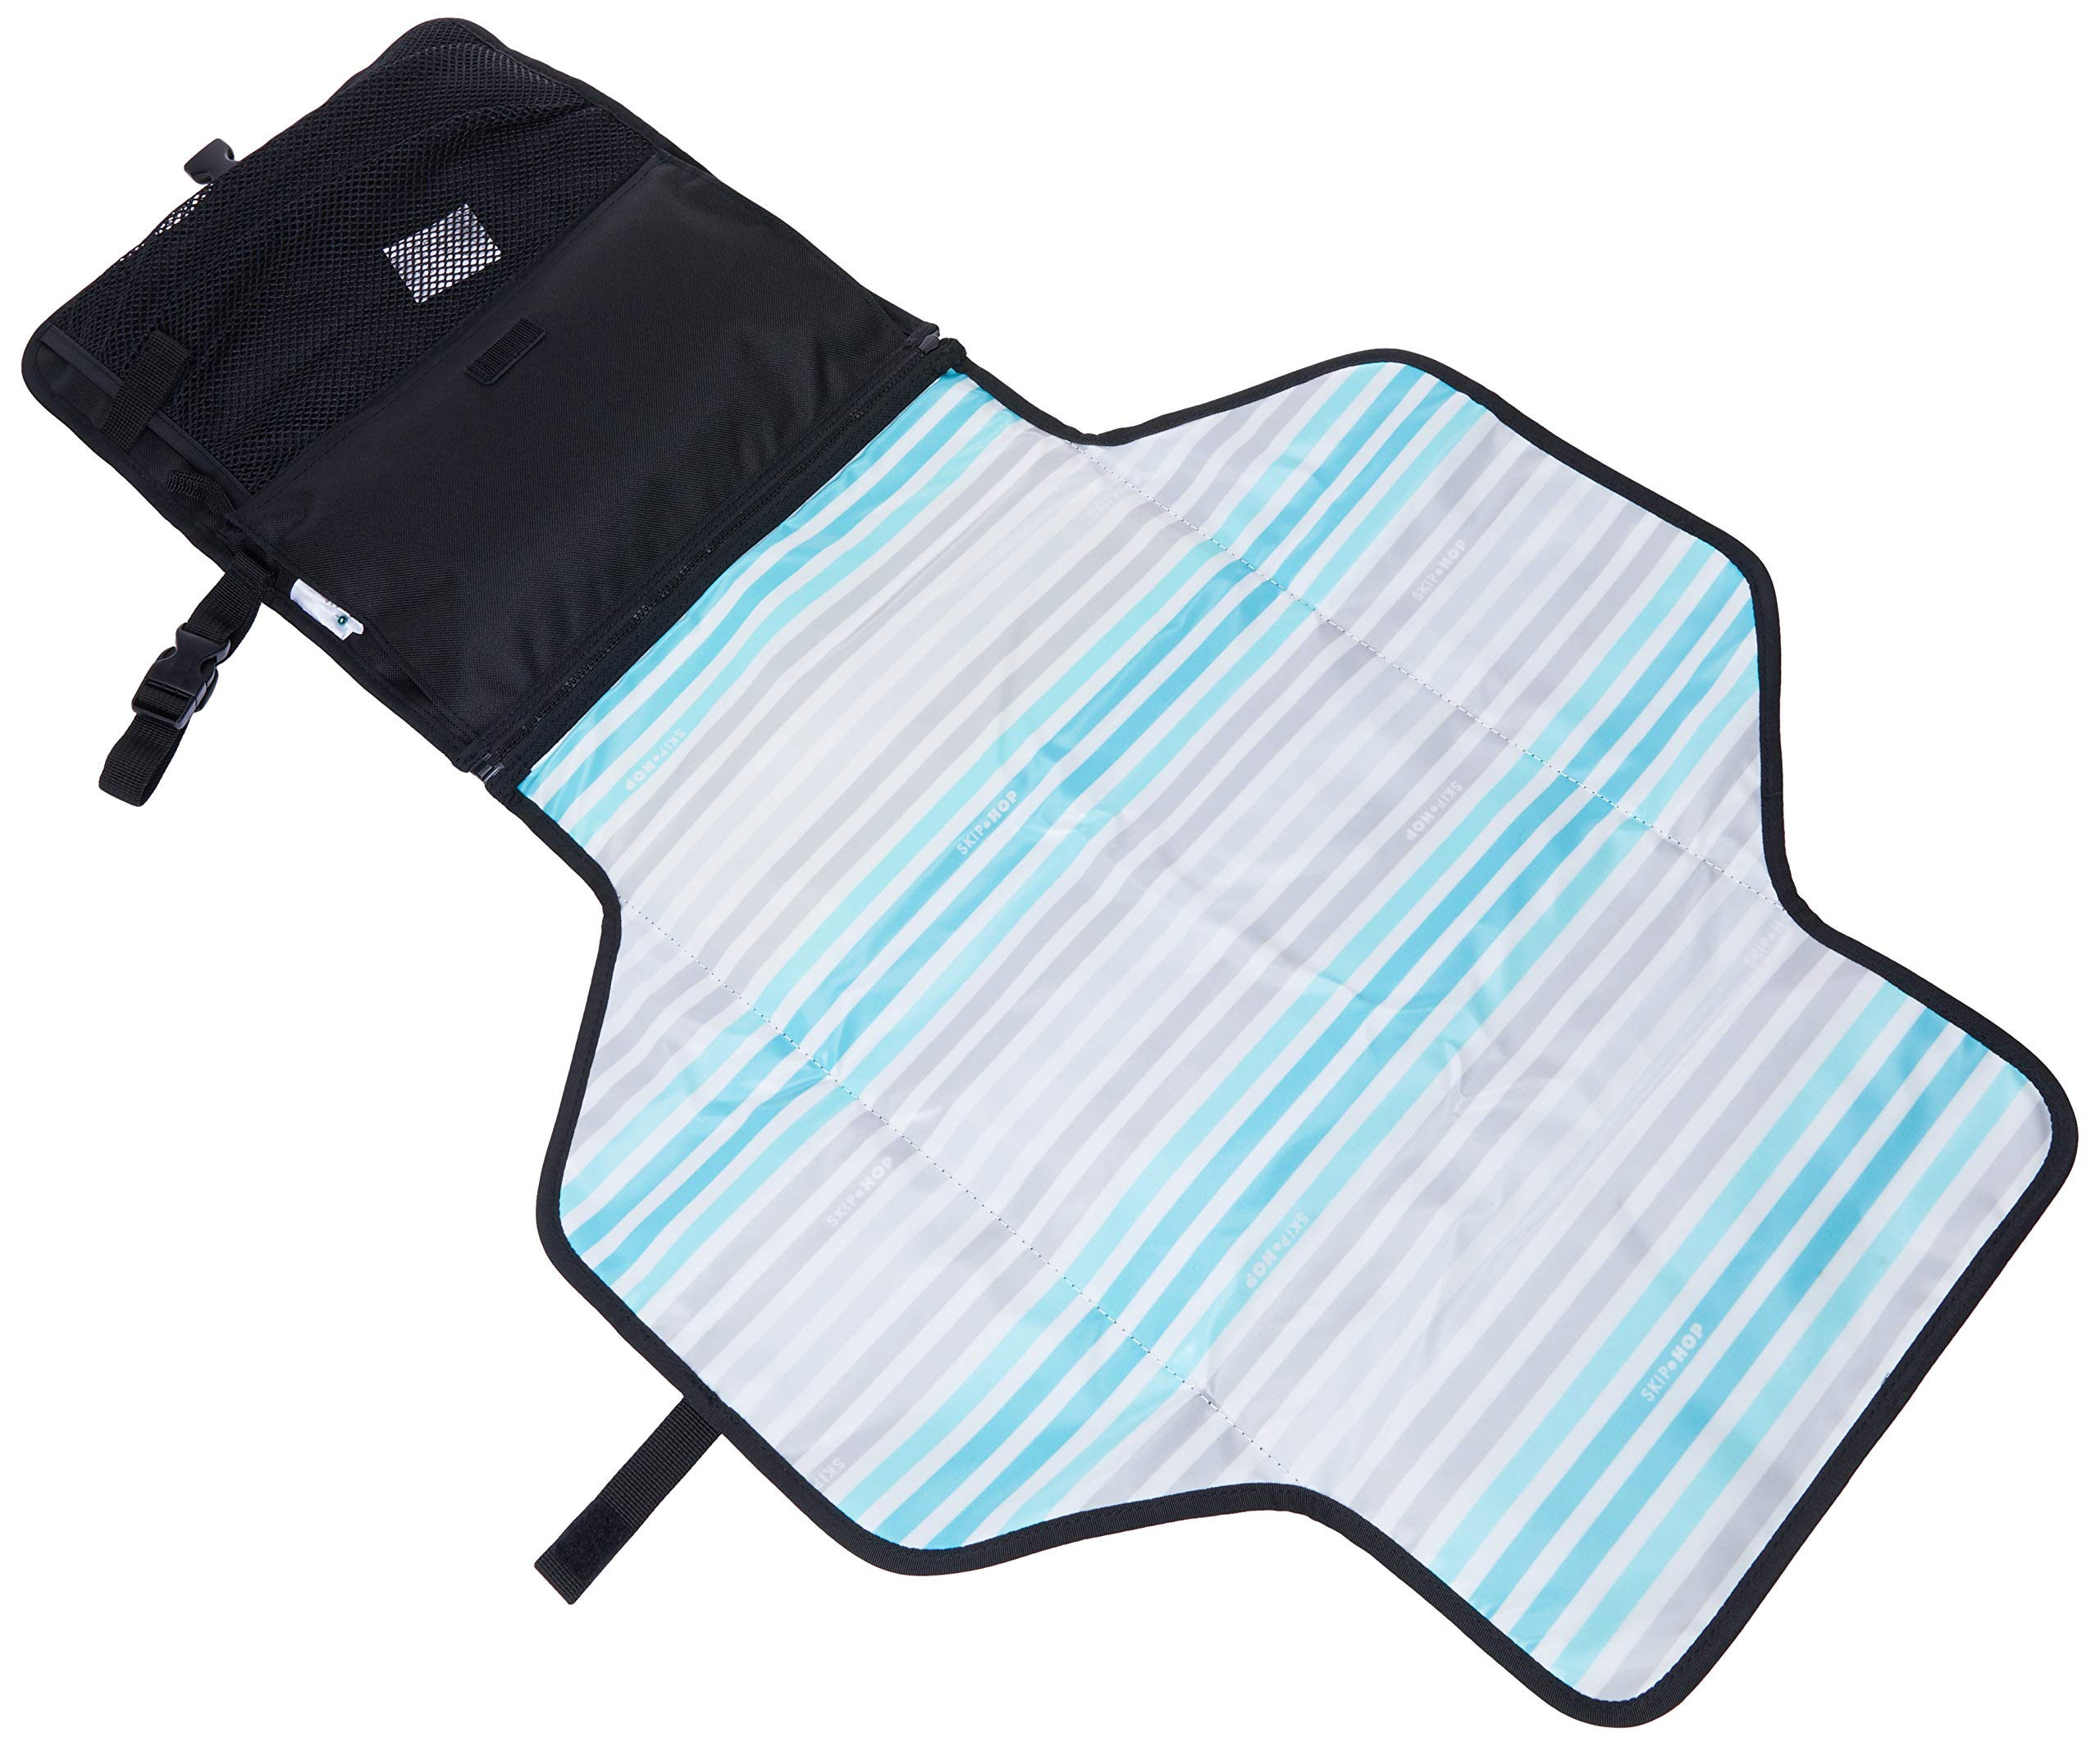 Skip Hop Pronto Signature Changing Set, Black Skip Hop Changing pad: extra-wide for wiggly babies. wipes clean. Two-in-one: pad zips off for independent use Translucent wipes case: see-through for timely reloads 5